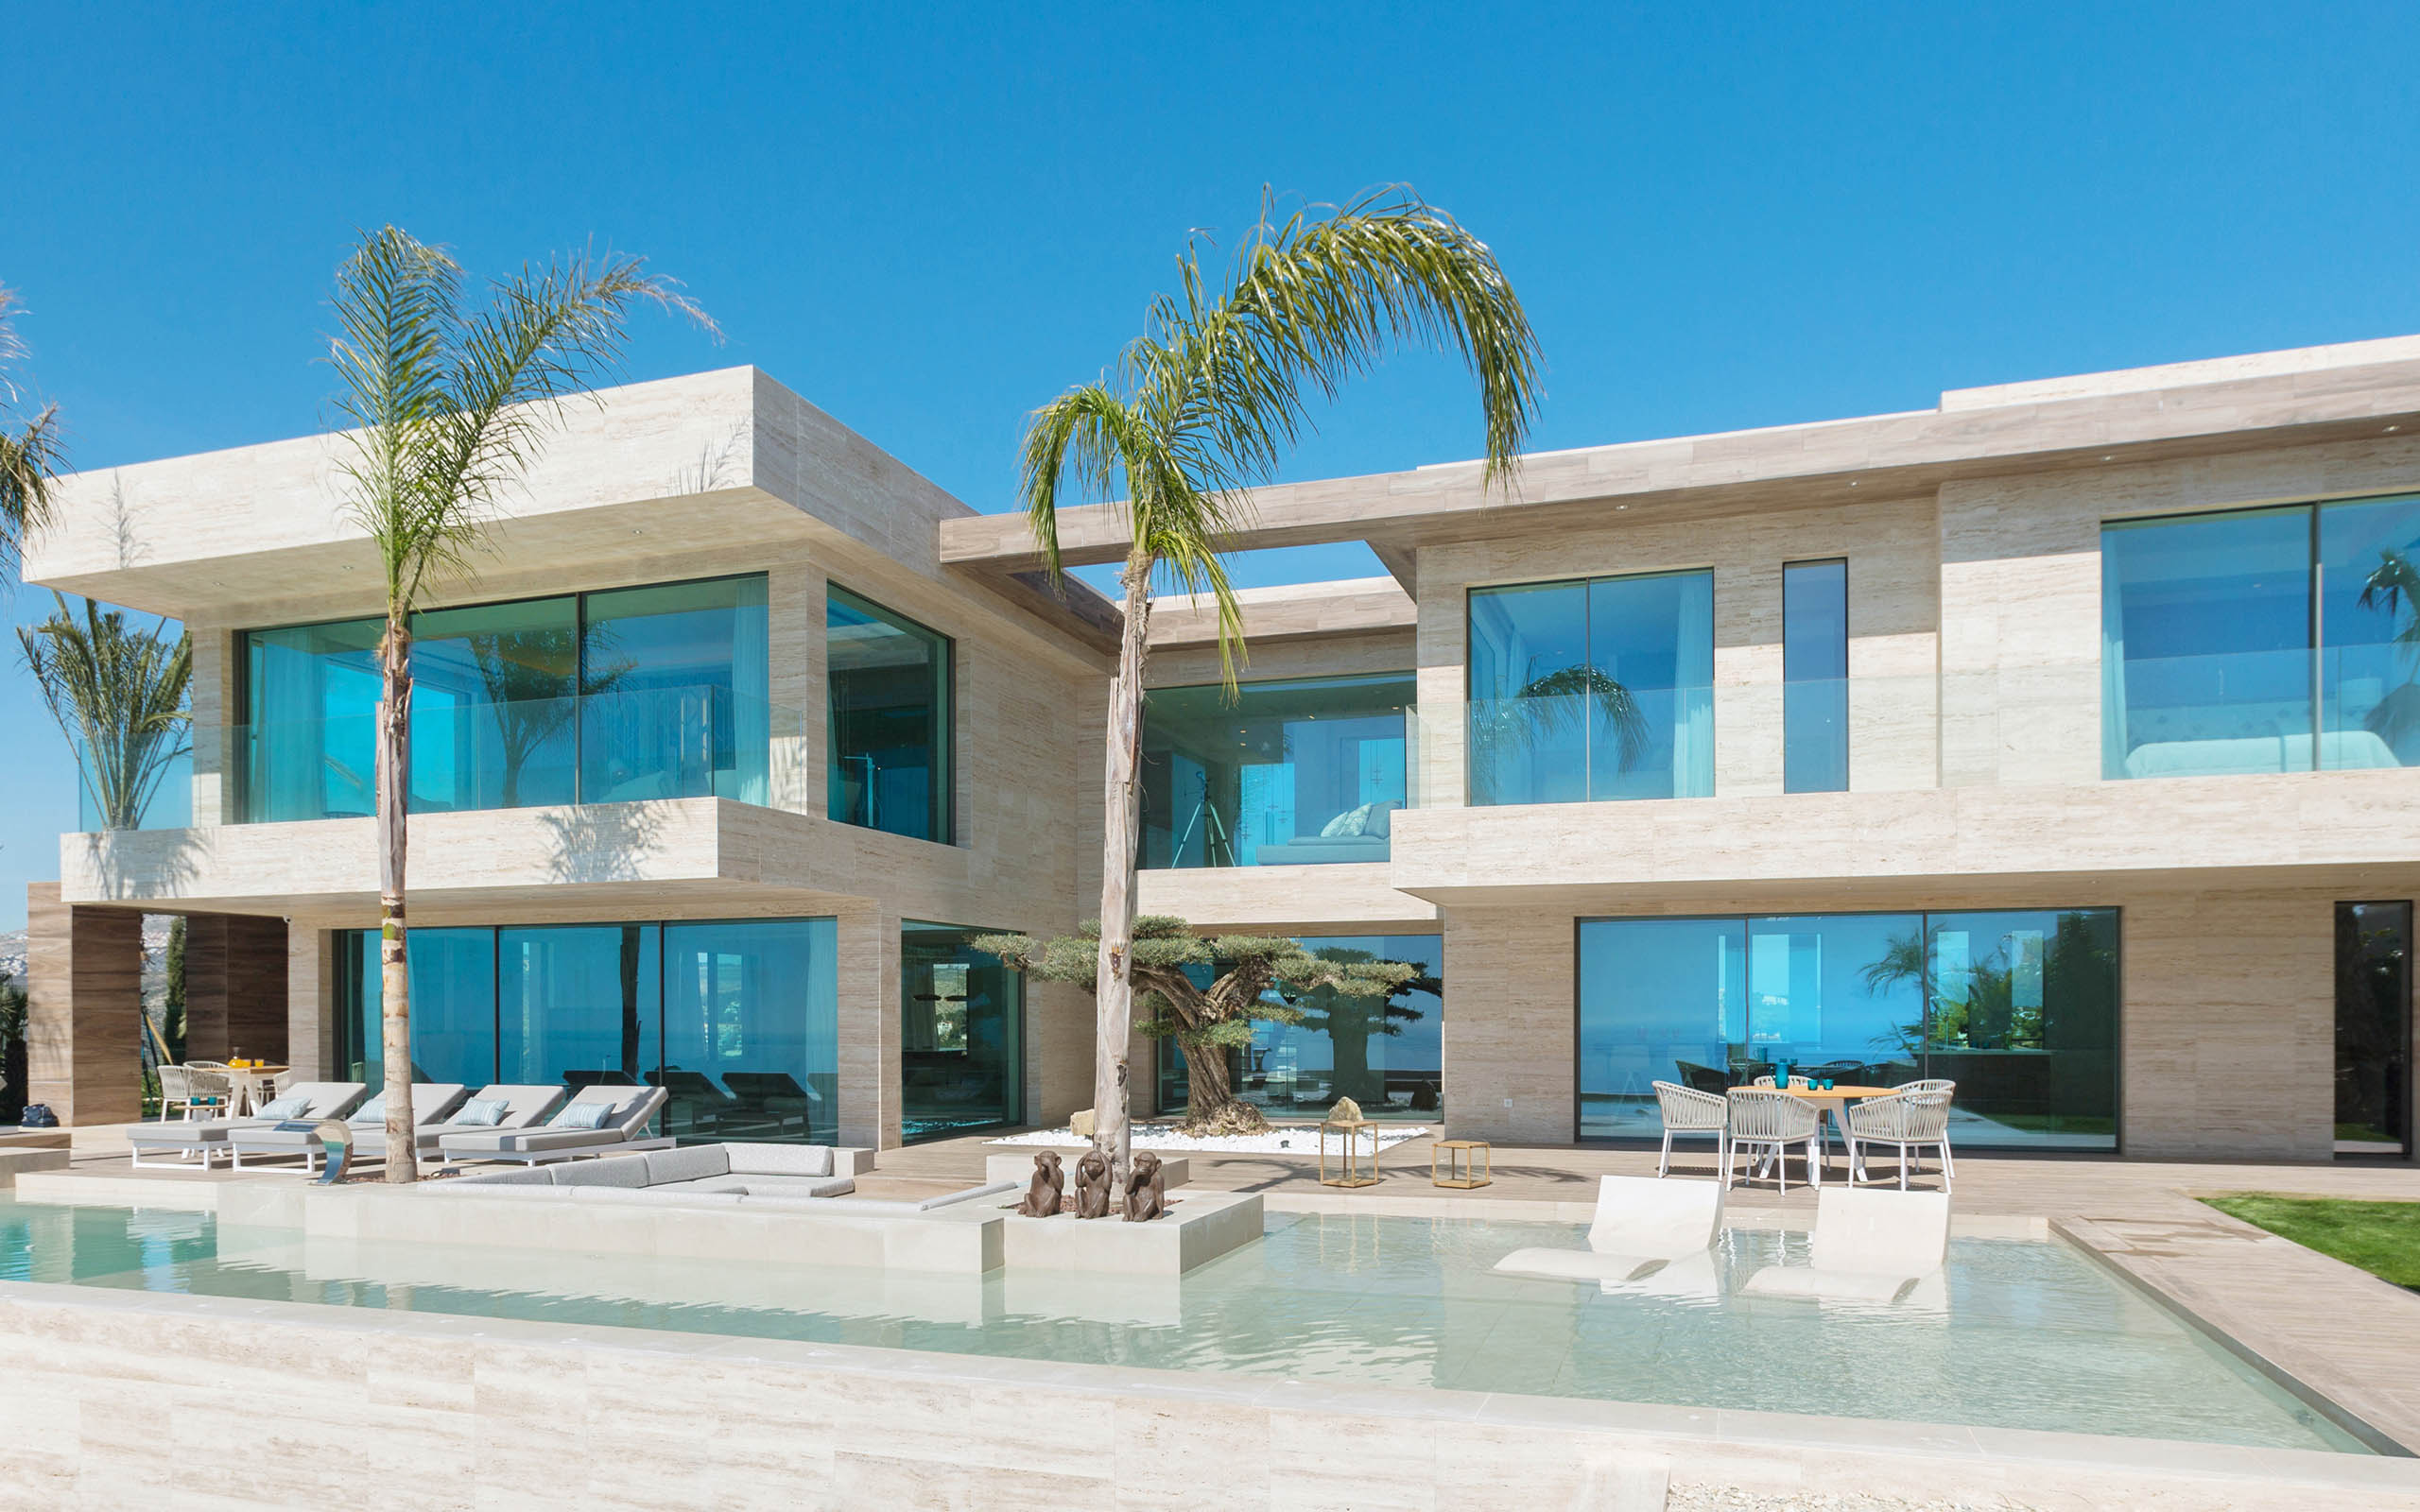 Villa El Sueño', a luxury project and a Gamadecor kitchen